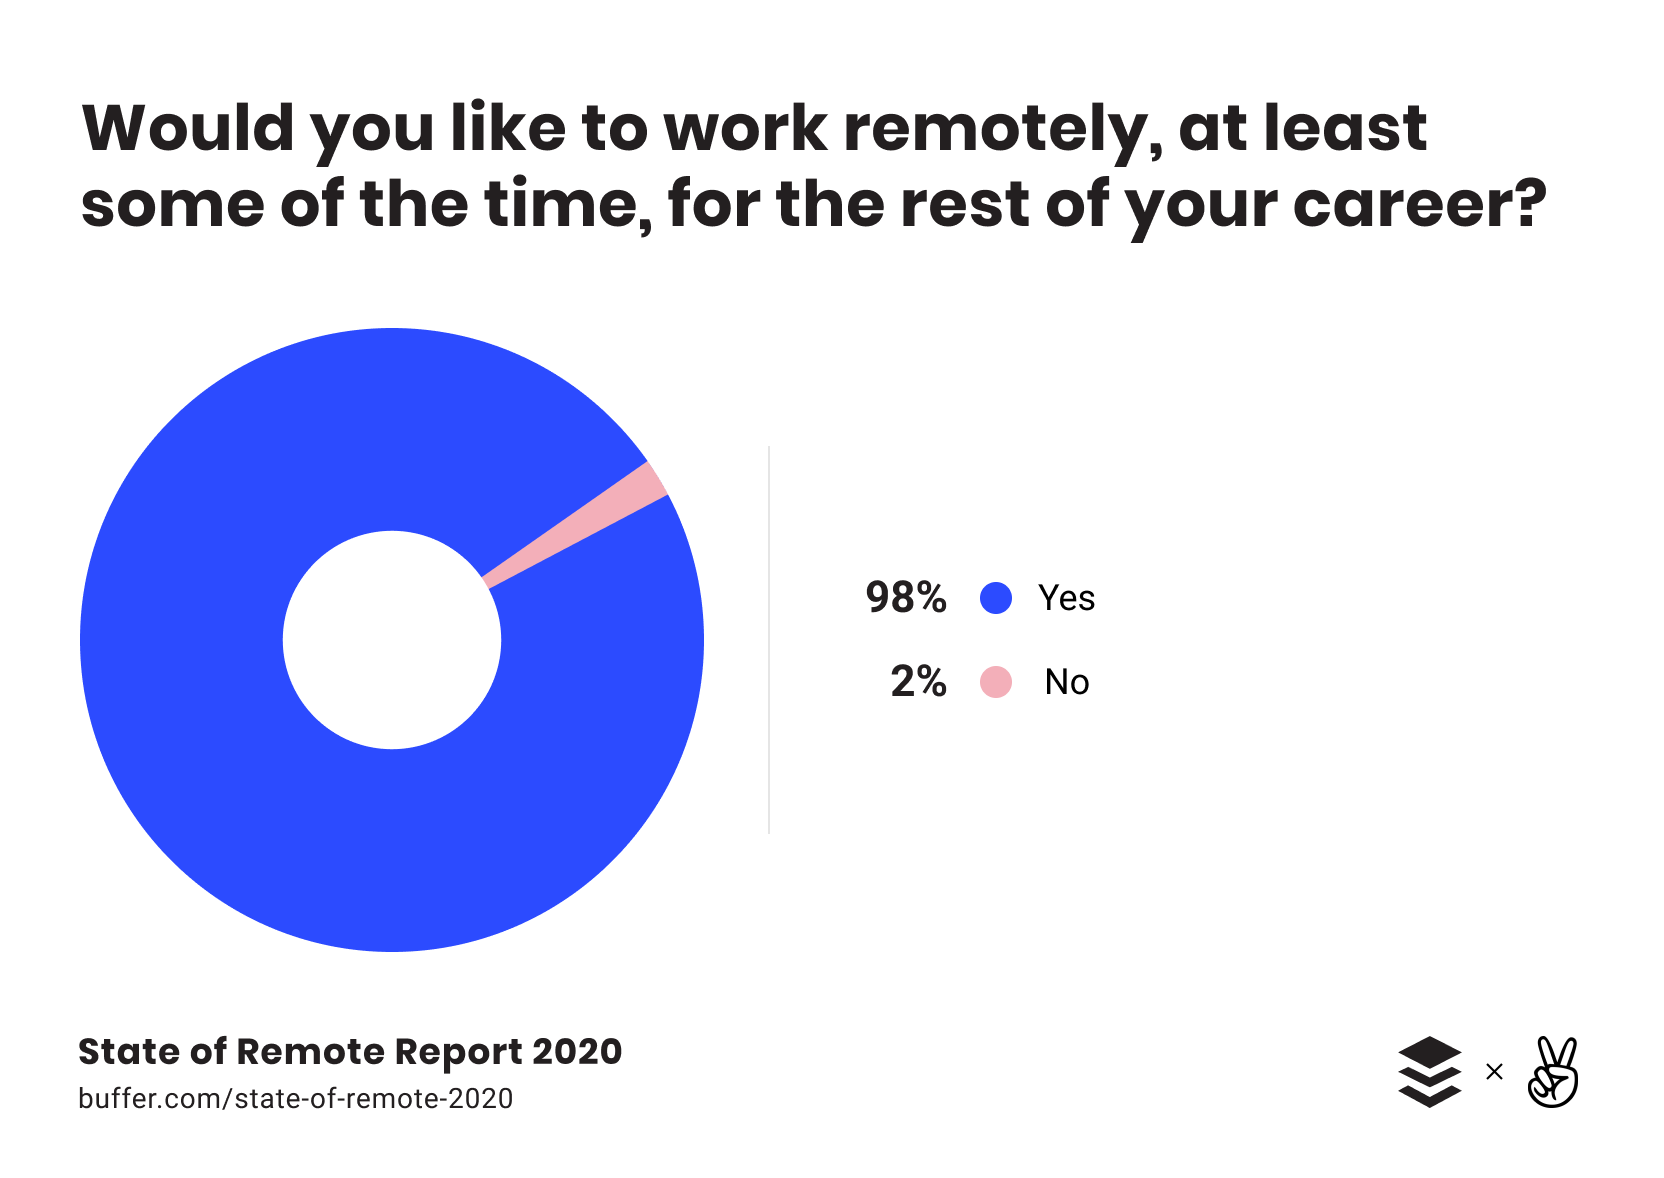 Sate of remote report 2020